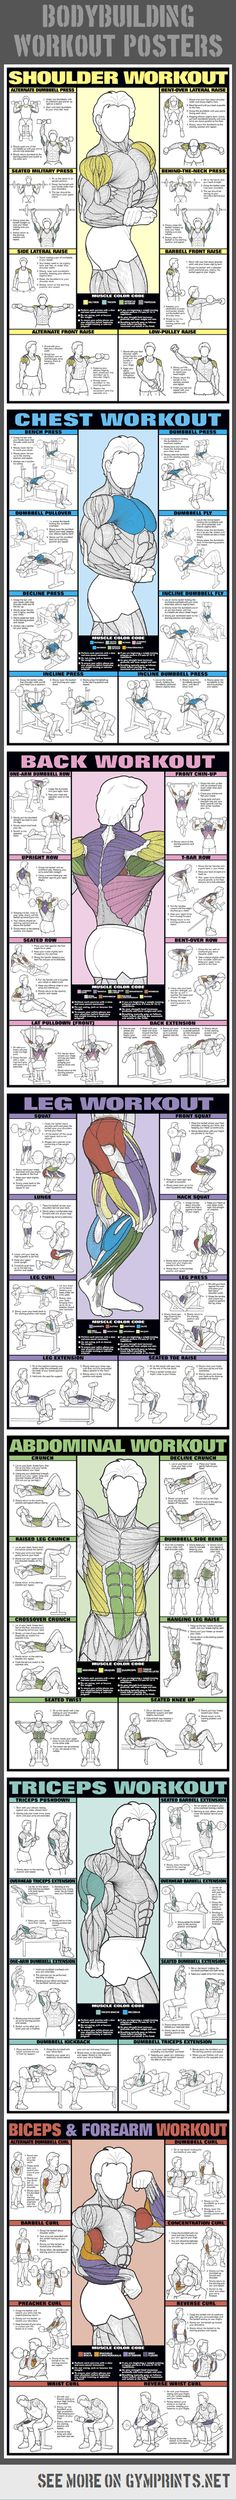 And Fitness Journal This in-depth shoulder workout shows you how to do these exercises and what they work!This in-depth shoulder workout shows you how to do these exercises and what they work! Bodybuilding Training, Bodybuilding Workouts, Bodybuilding Motivation, Body Fitness, Fitness Tips, Health Fitness, Fitness Journal, Chest Workouts, Gym Workouts